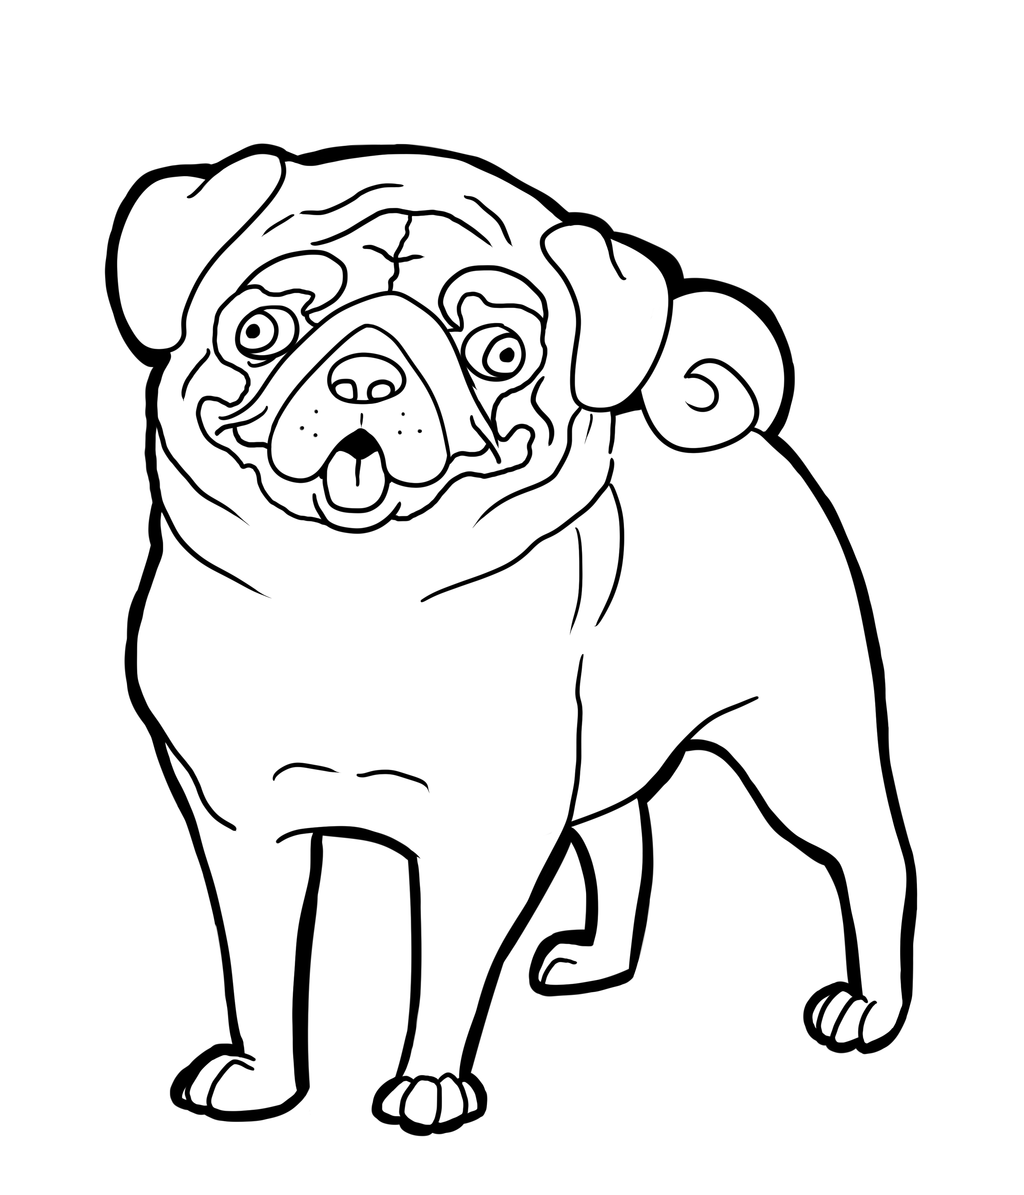 Pug coloring pages to download and print for free | Pug | Pinterest